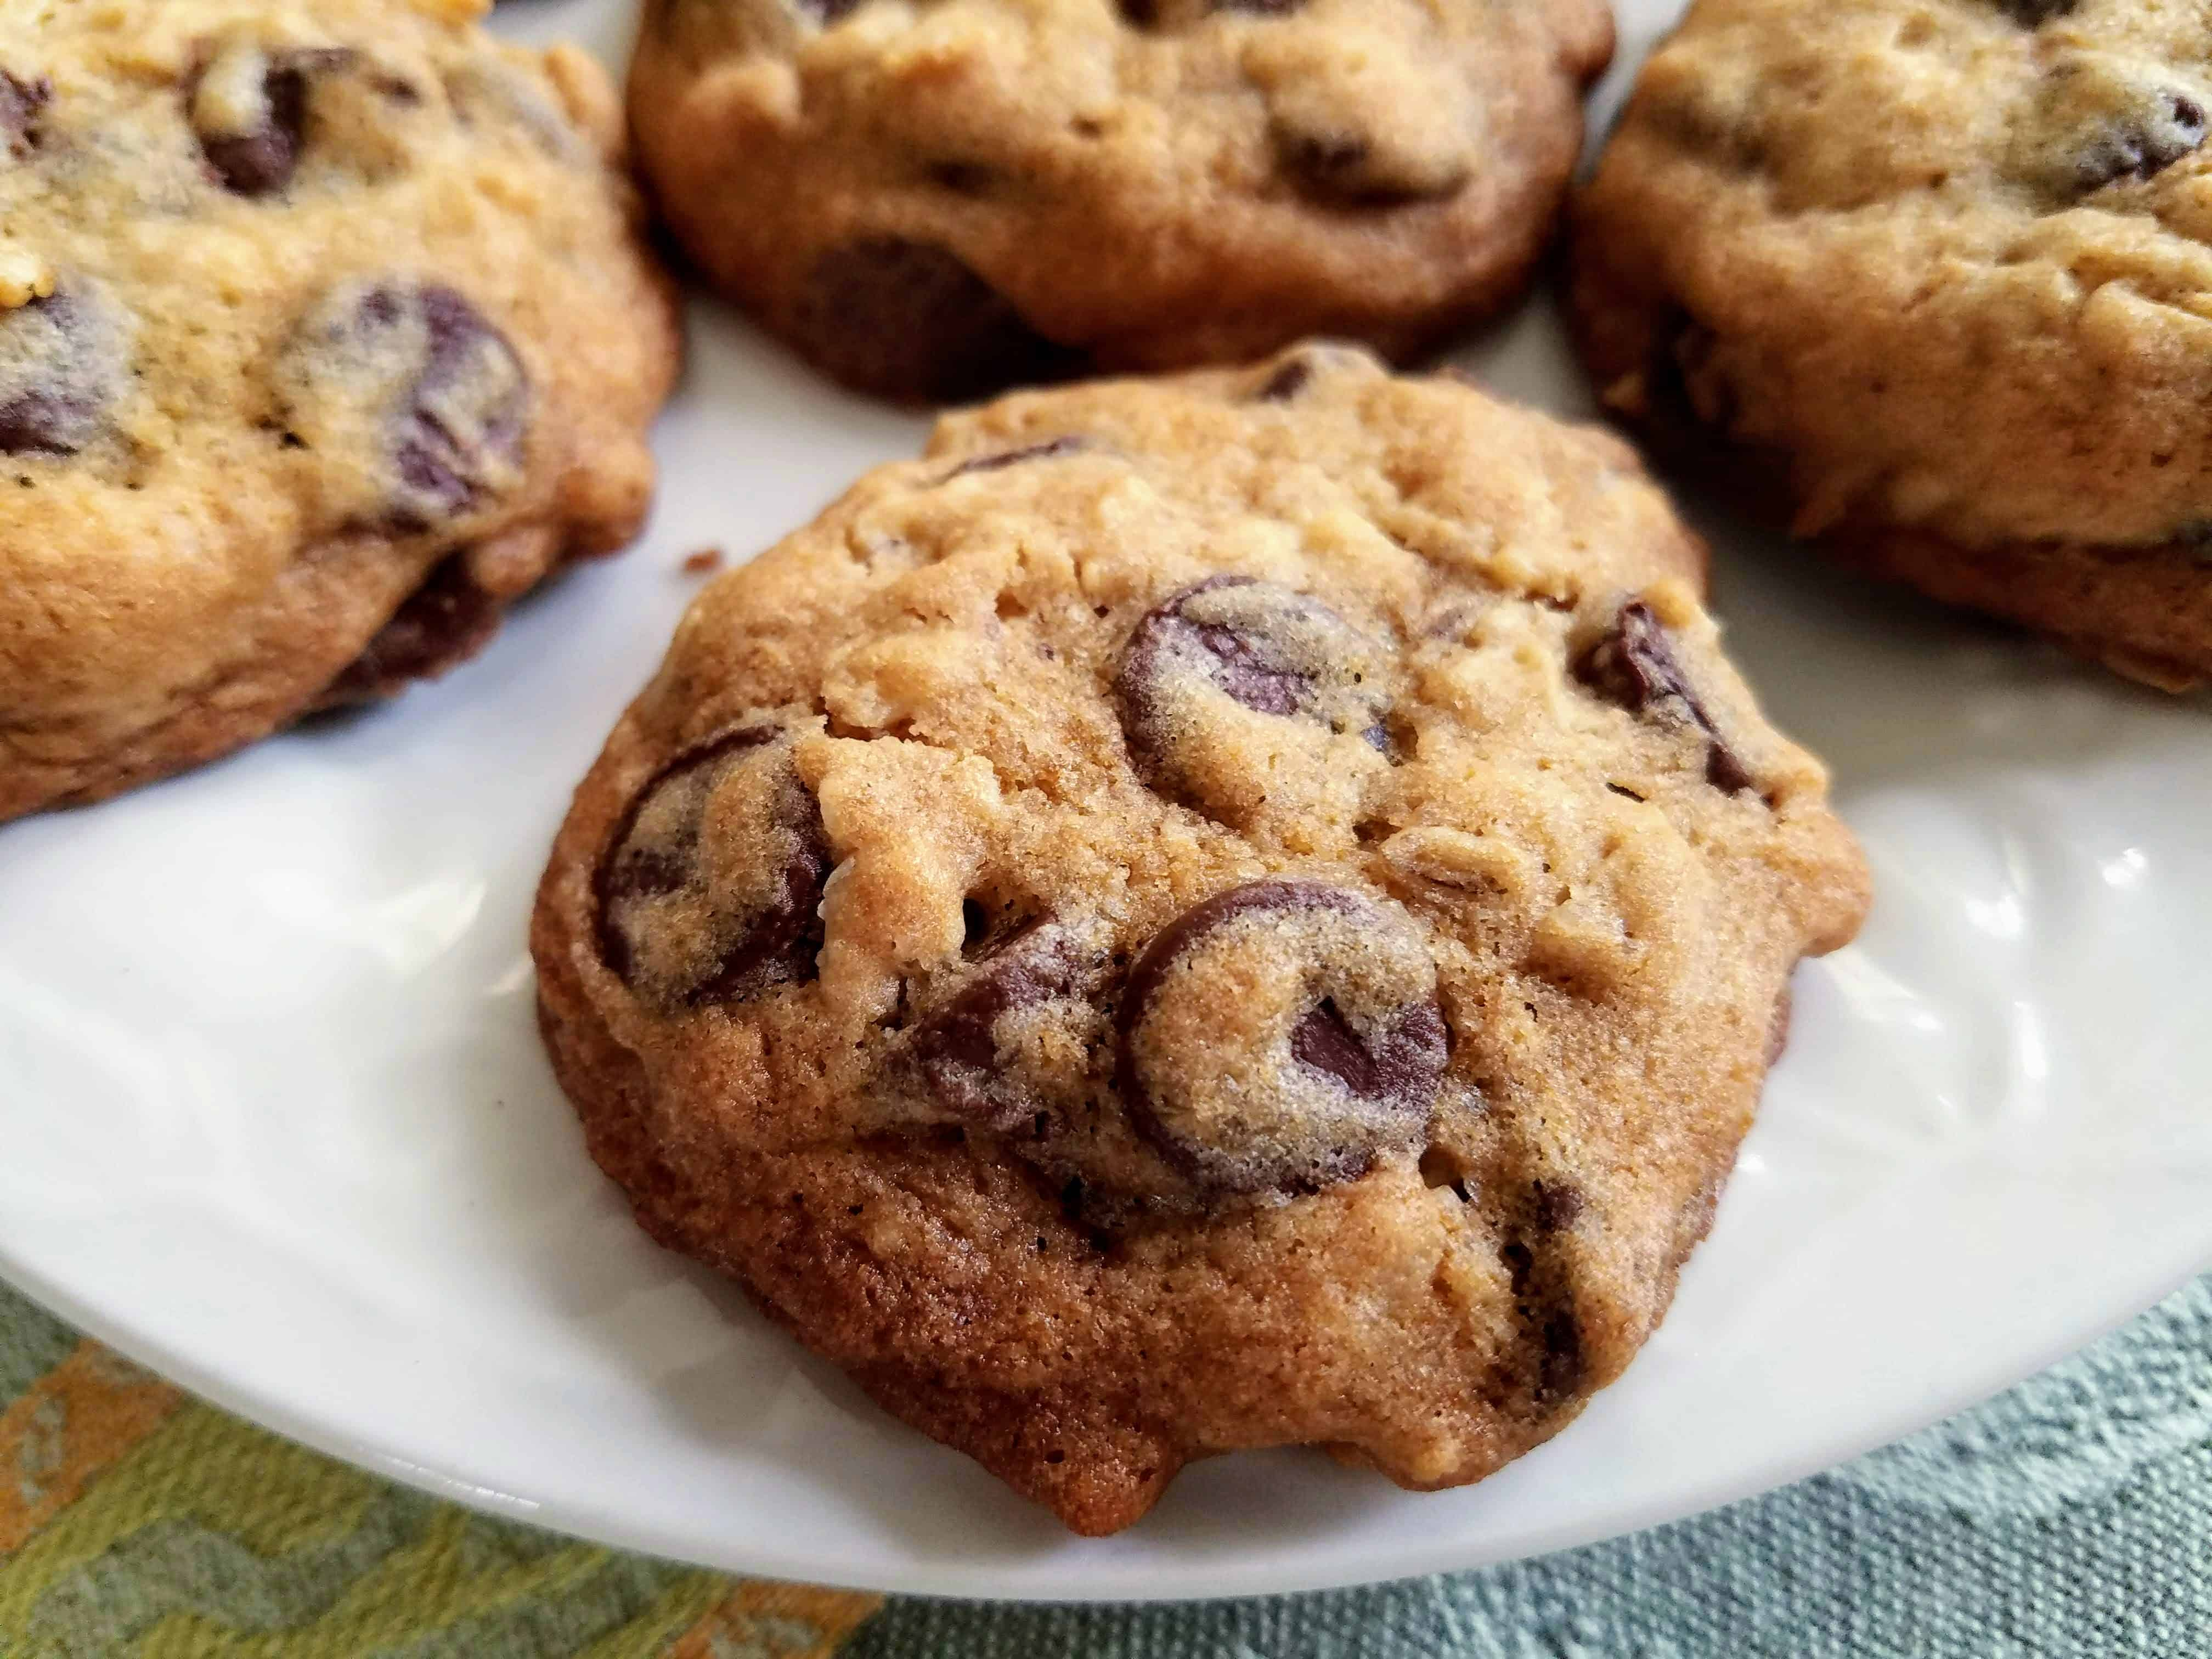 Soft and Chewy Oatmeal Chocolate Cookies will be your new favorite cookie! Packed with oatmeal and chocolate chips in every bite, it's the best chewy cookie ever! #BakeBetterCookies #CollectiveBias #ChewyChocolateChipCookies via @Mooreorlesscook